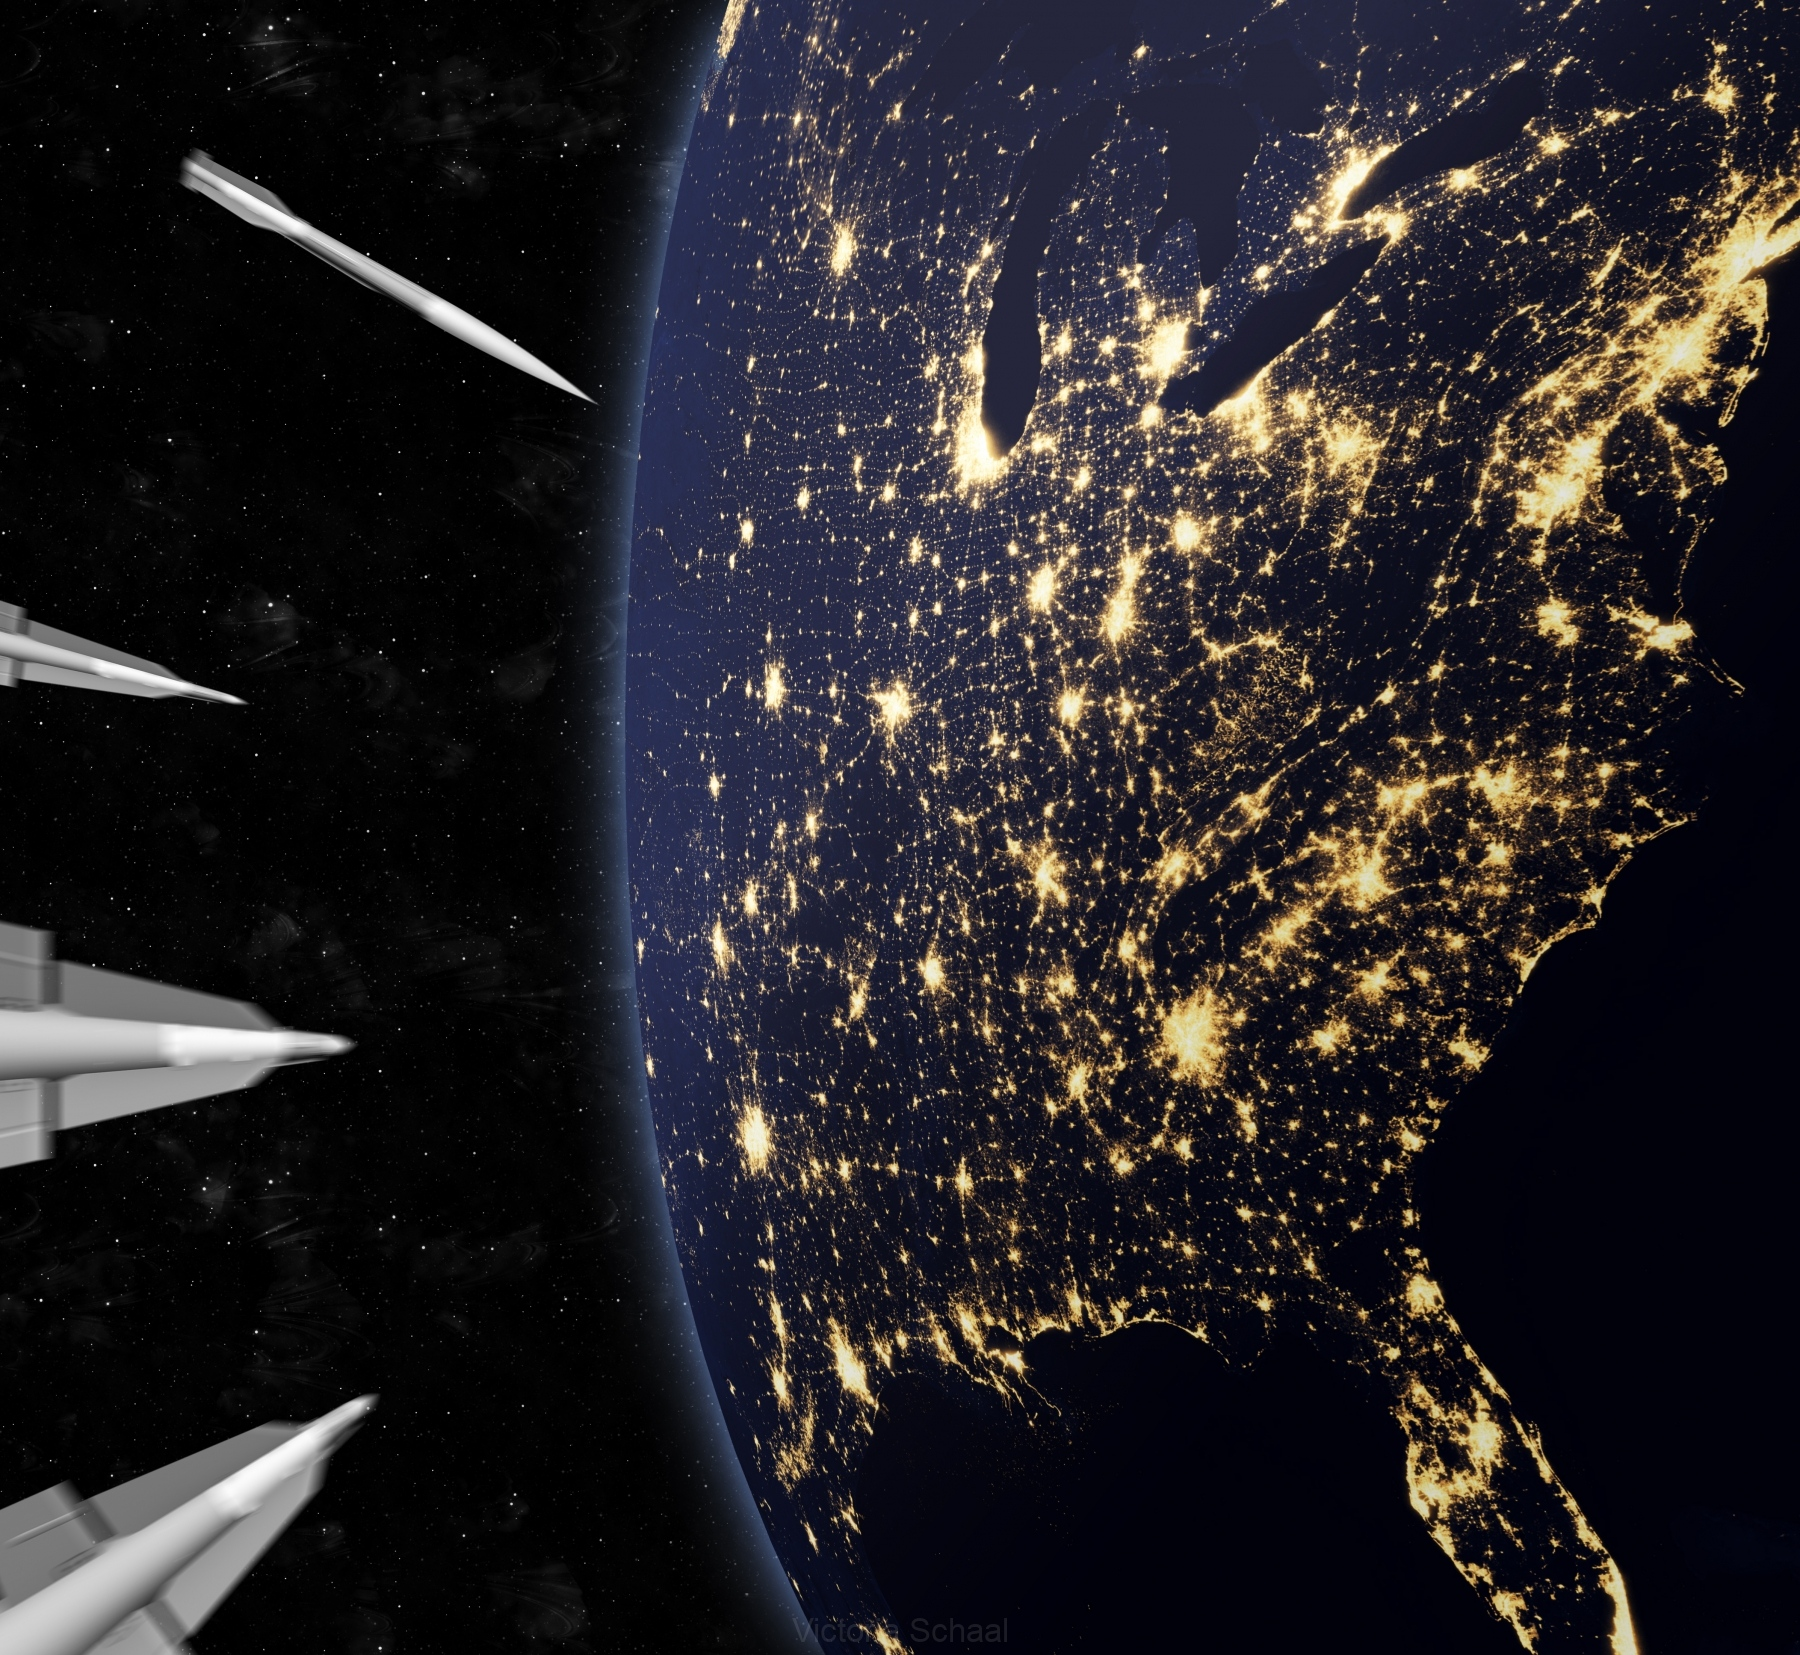 Approaching nuclear missiles attacking the US